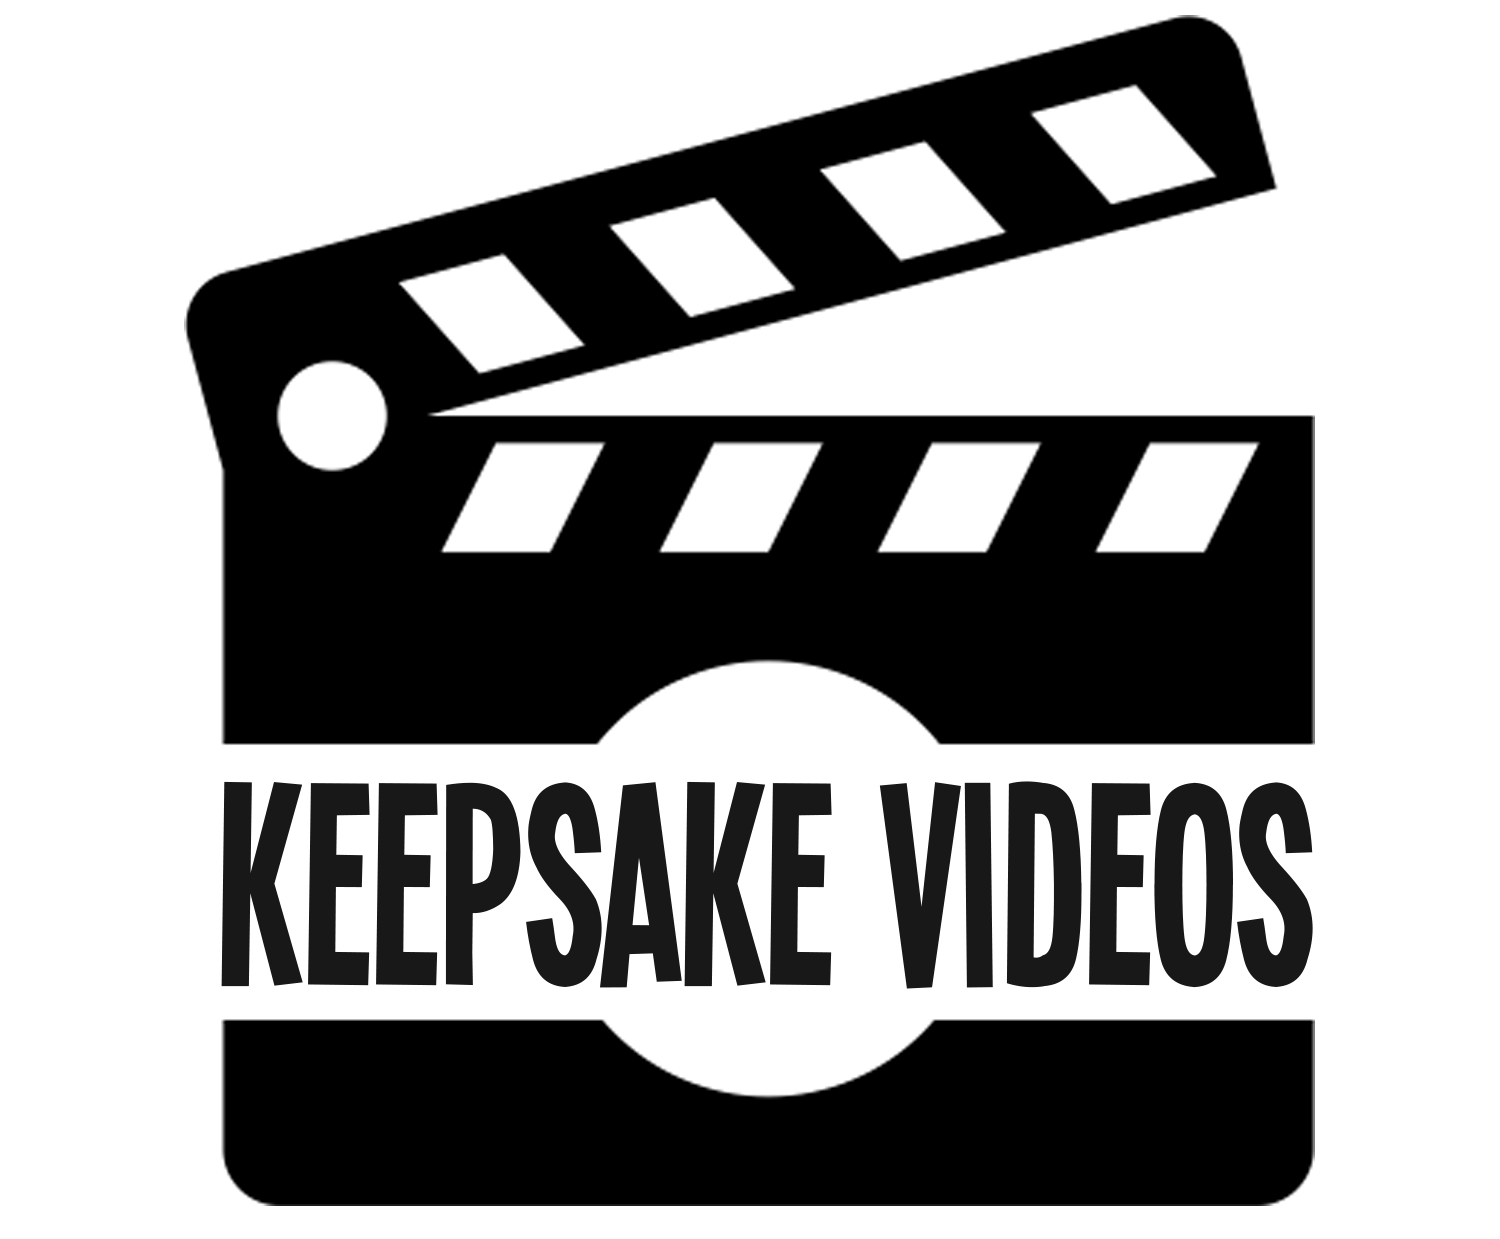 www.keepsakevideos.co.uk